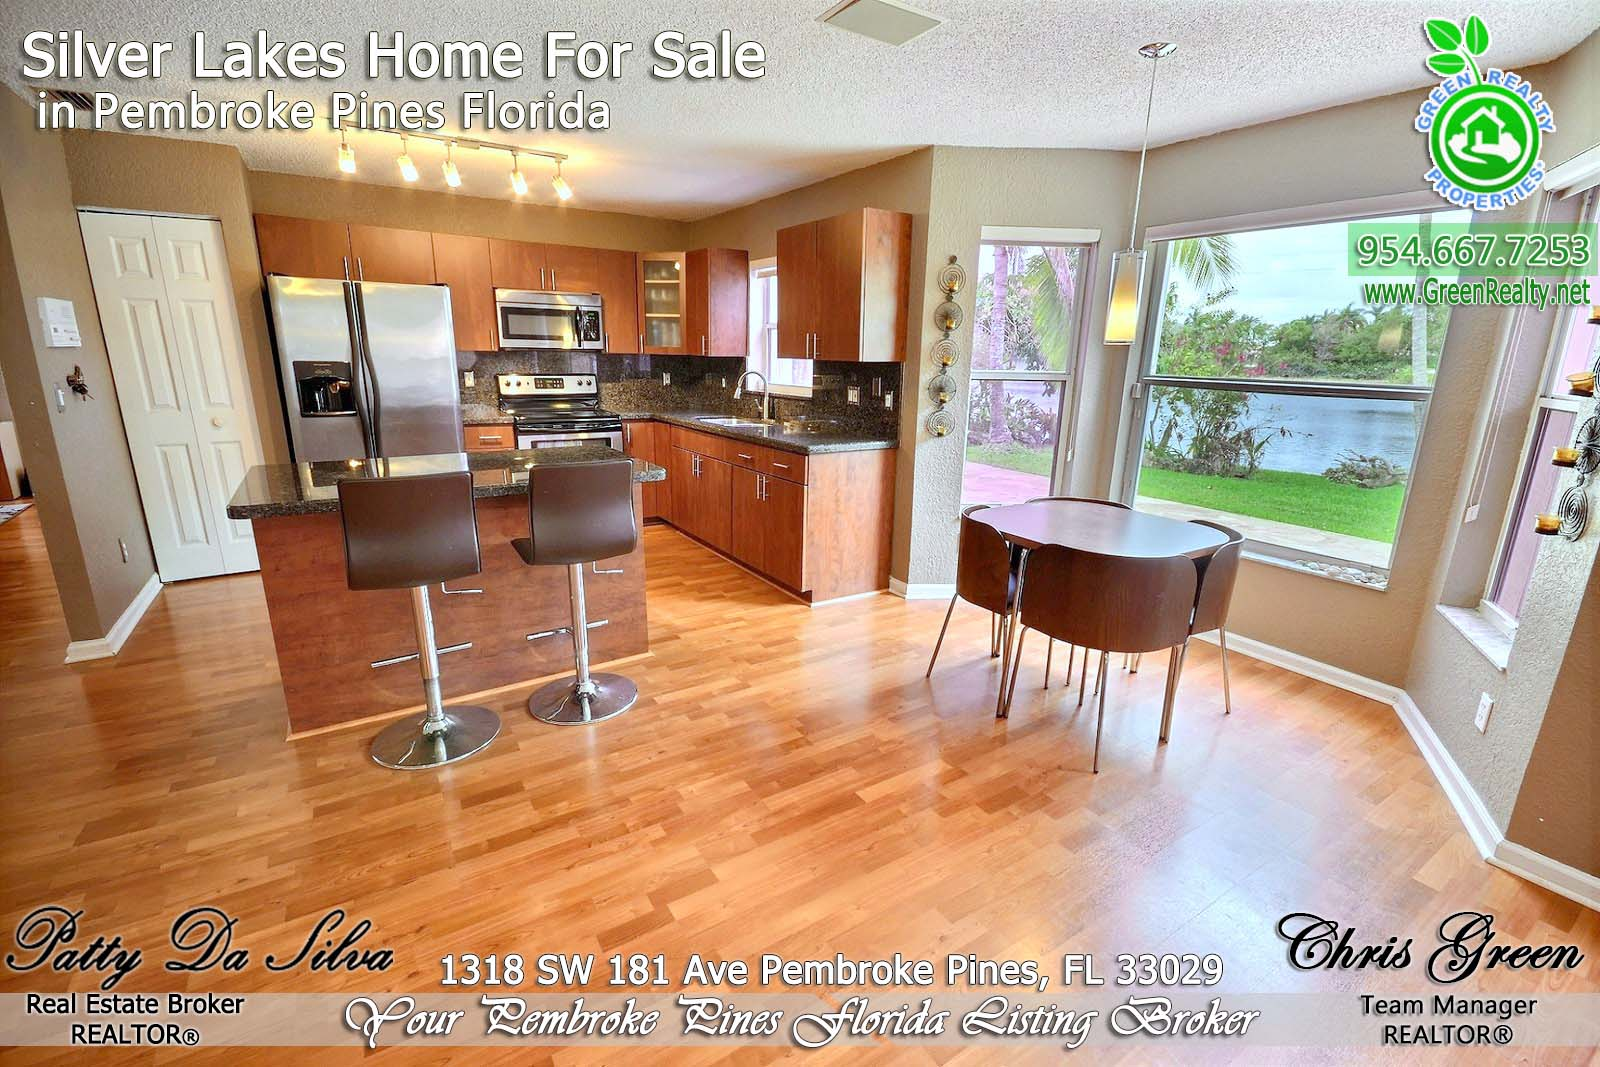 10 Silver Lakes Homes For Sale (4)